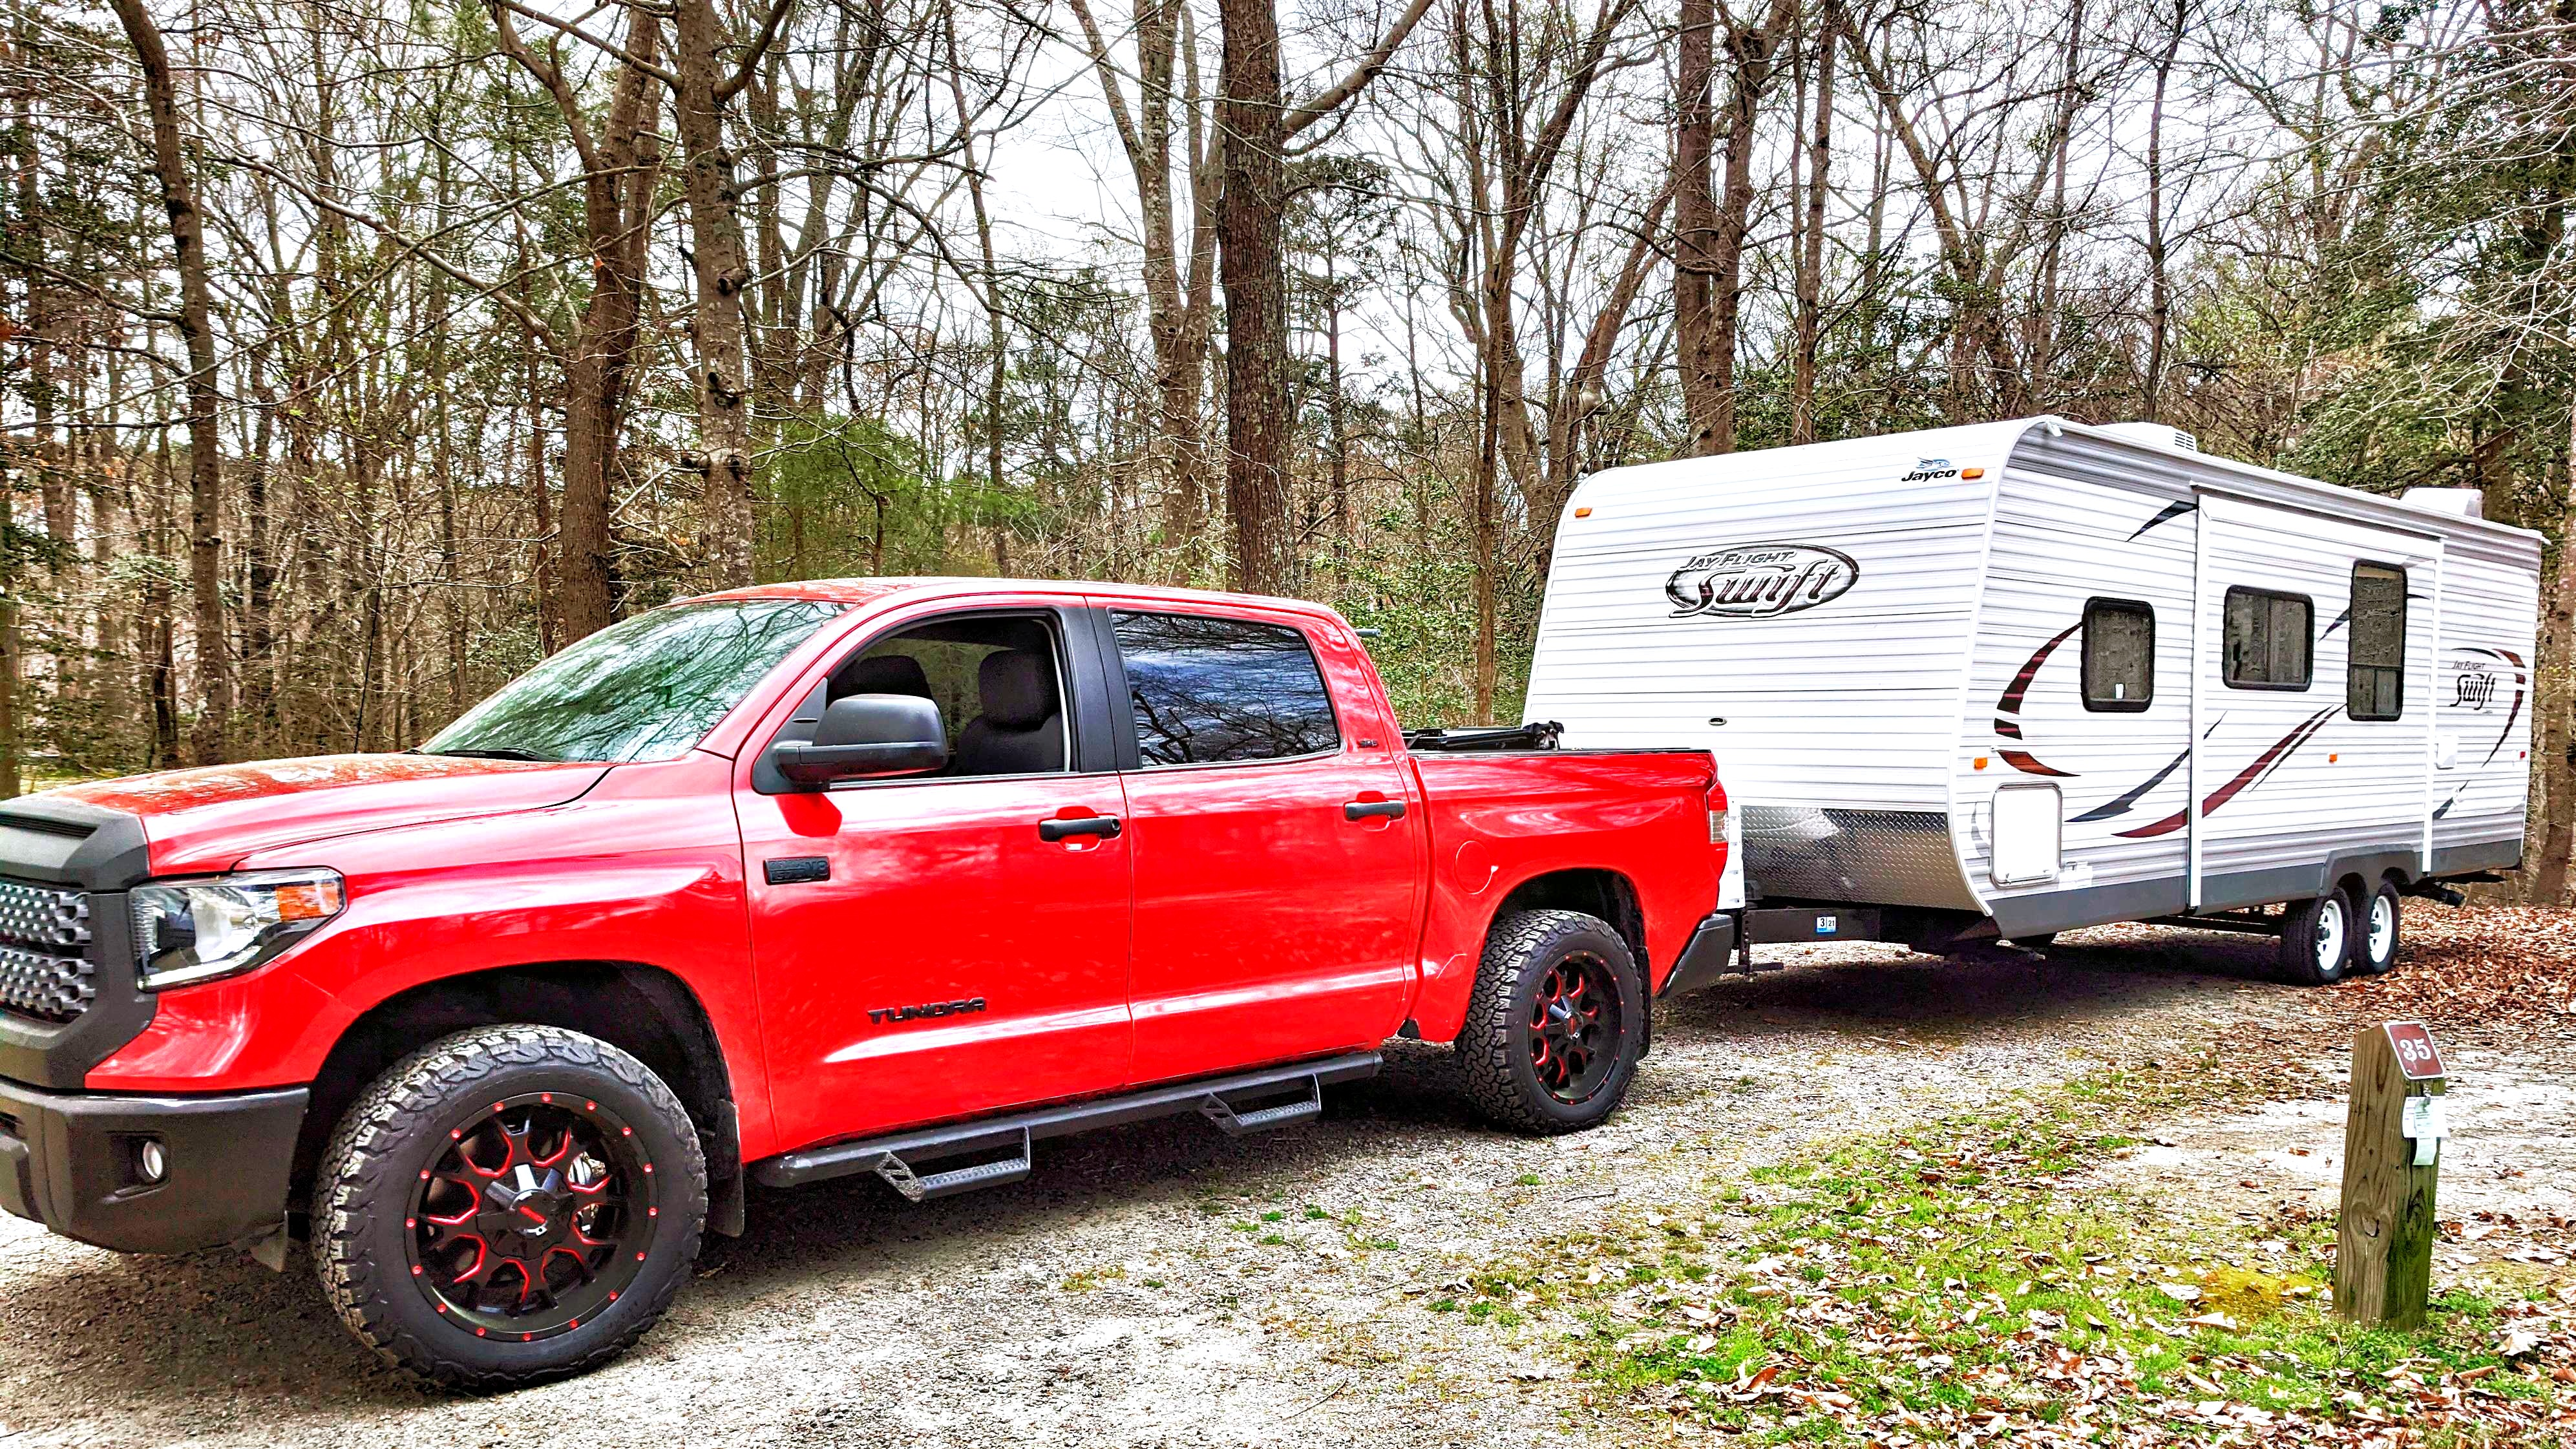 Towels easily behind the Tundra.  . Jayco Camper Trailer- Swift 2014